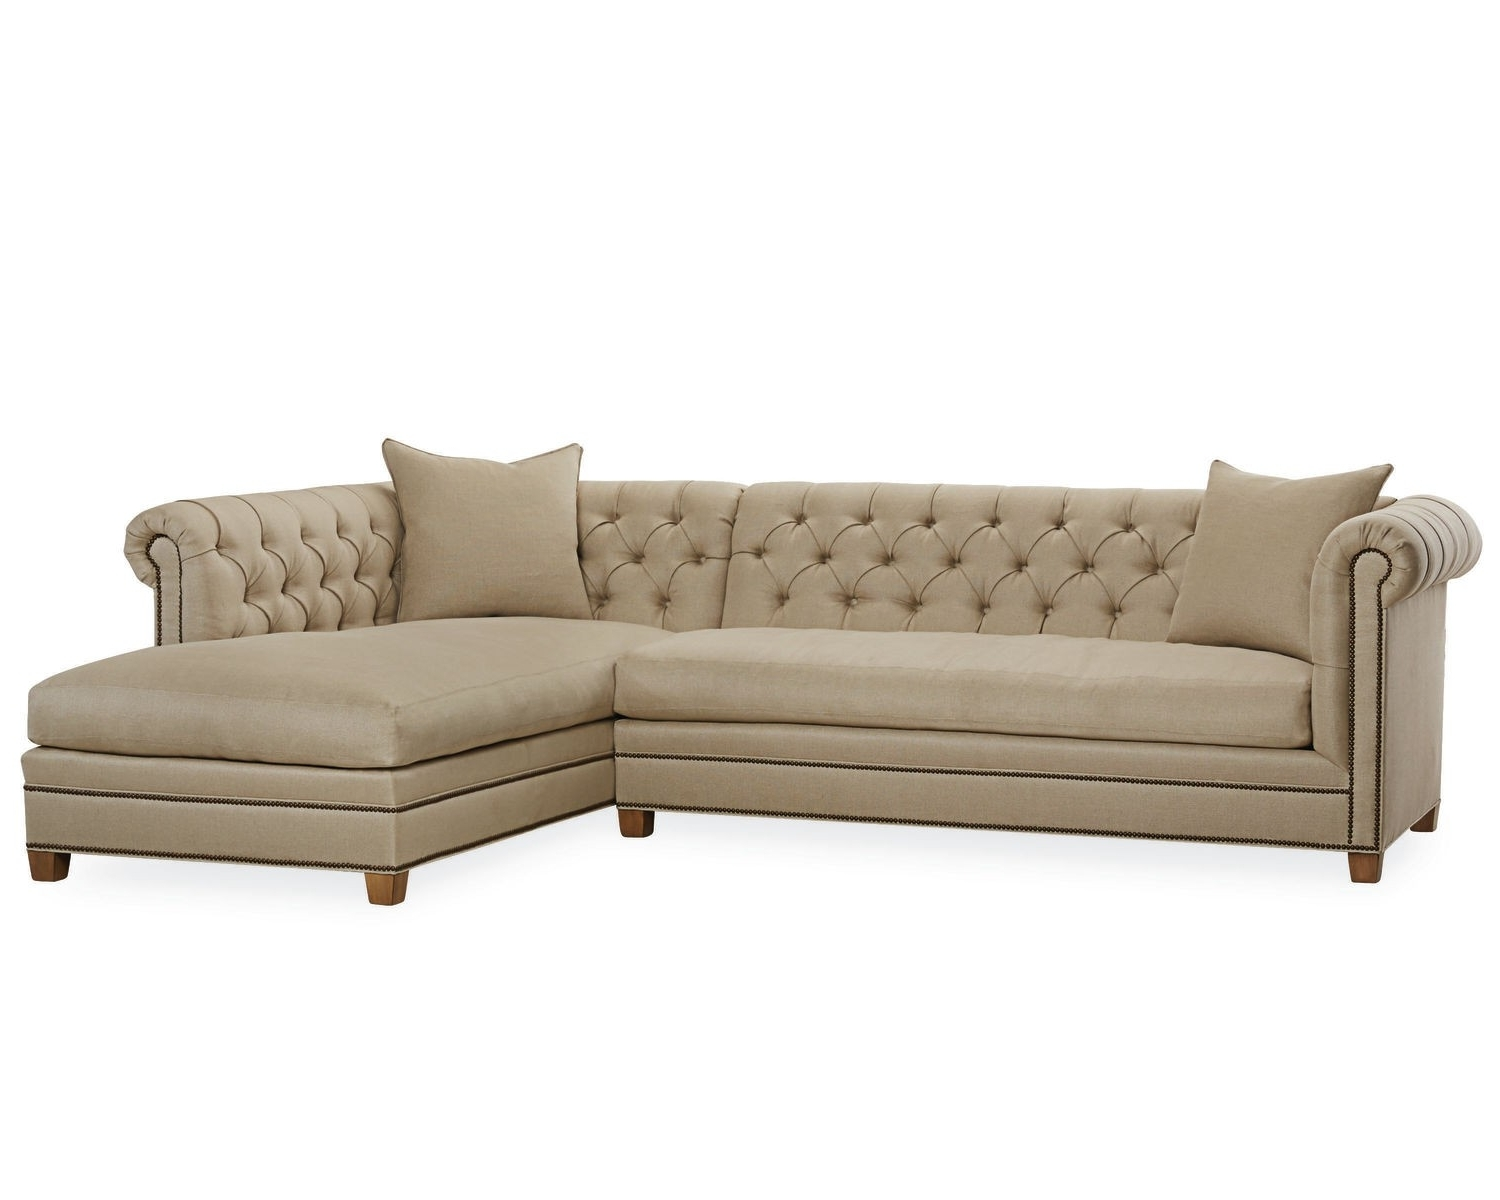 Lee Industries Throughout Sectional Sofas With Nailhead Trim (View 8 of 20)